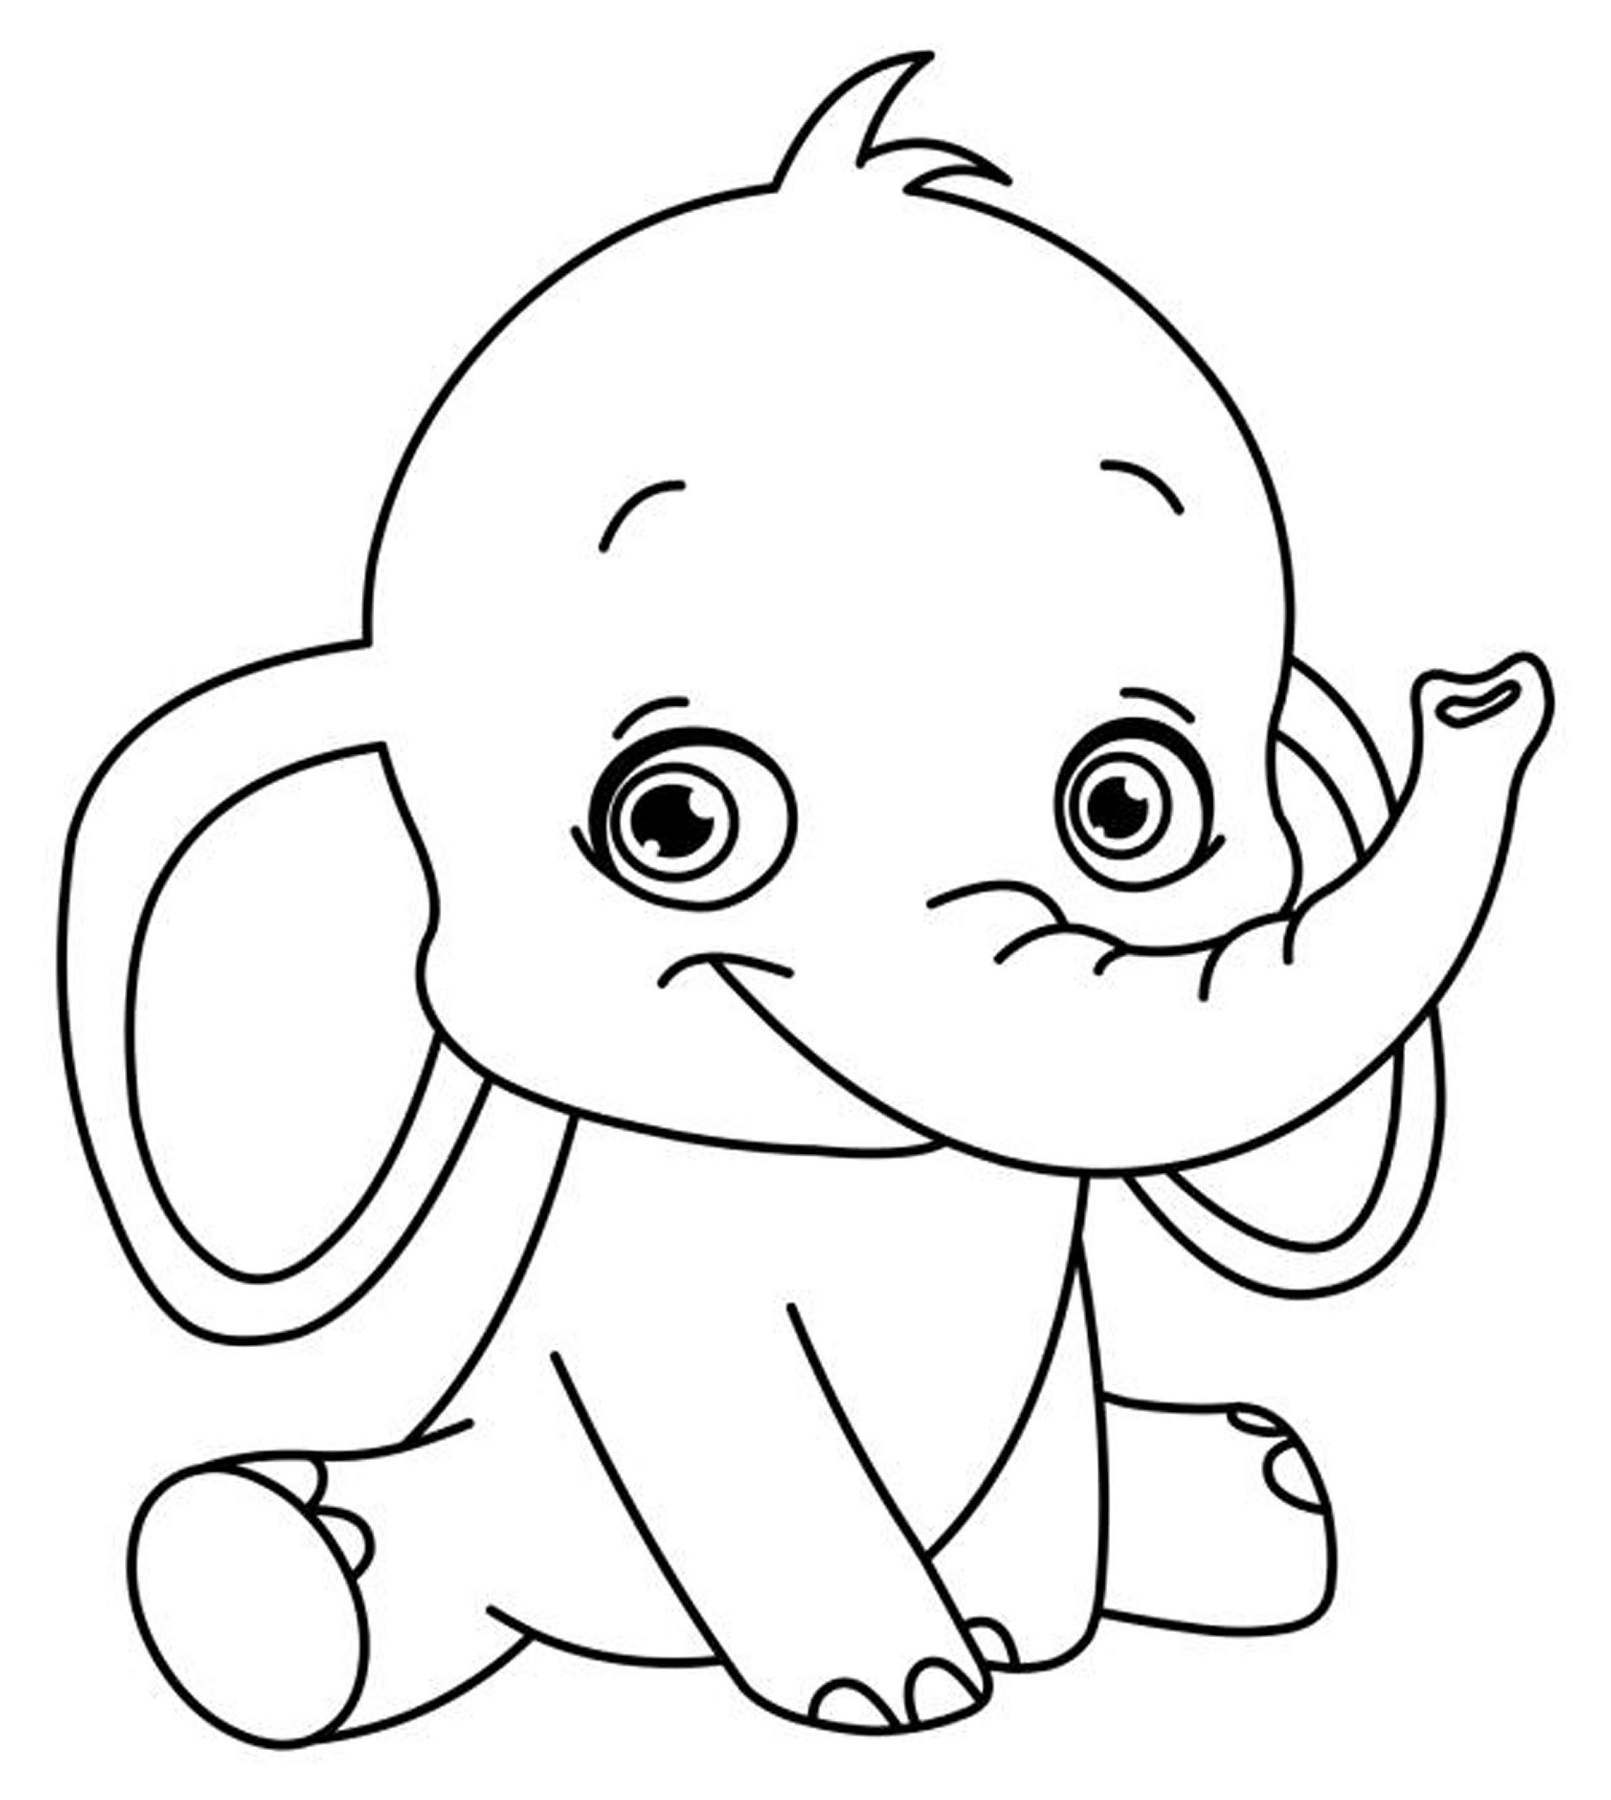 Coloring Ideas : Childrens Colouring Pages With Kindergarten - Free Printable Coloring Books For Toddlers